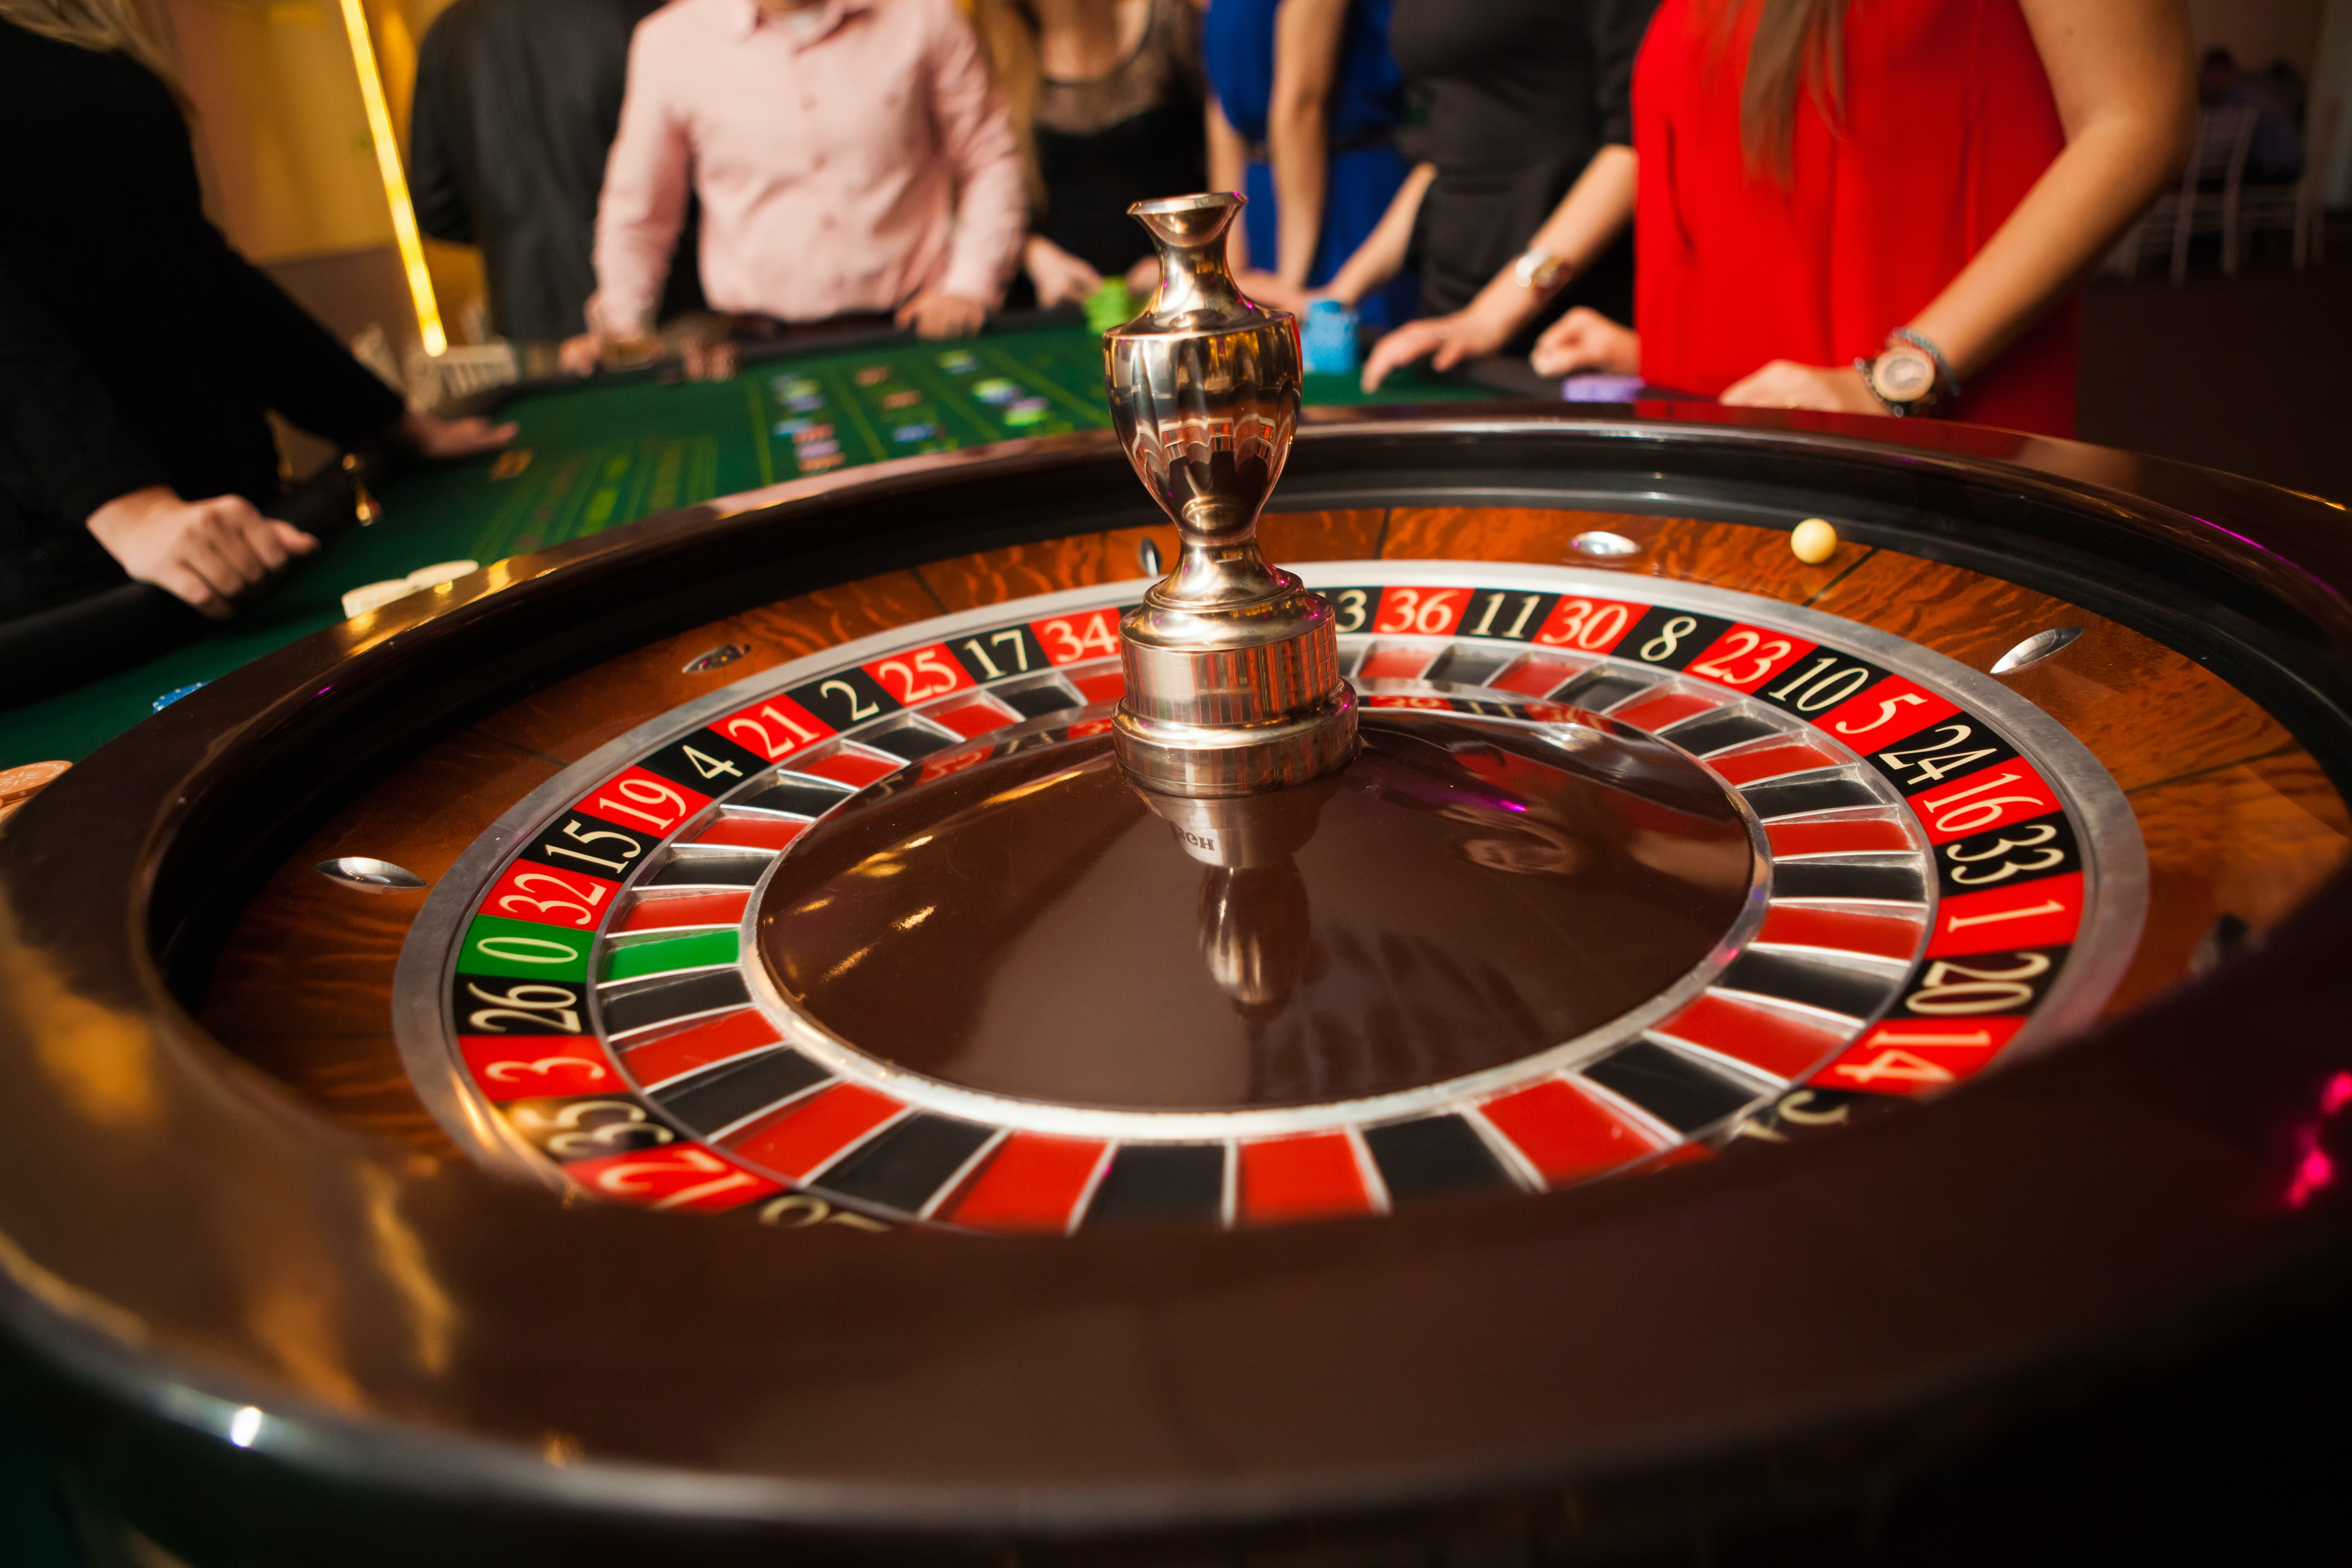 How to beat roulette in a casino Is it possible to beat an online casino in roulette